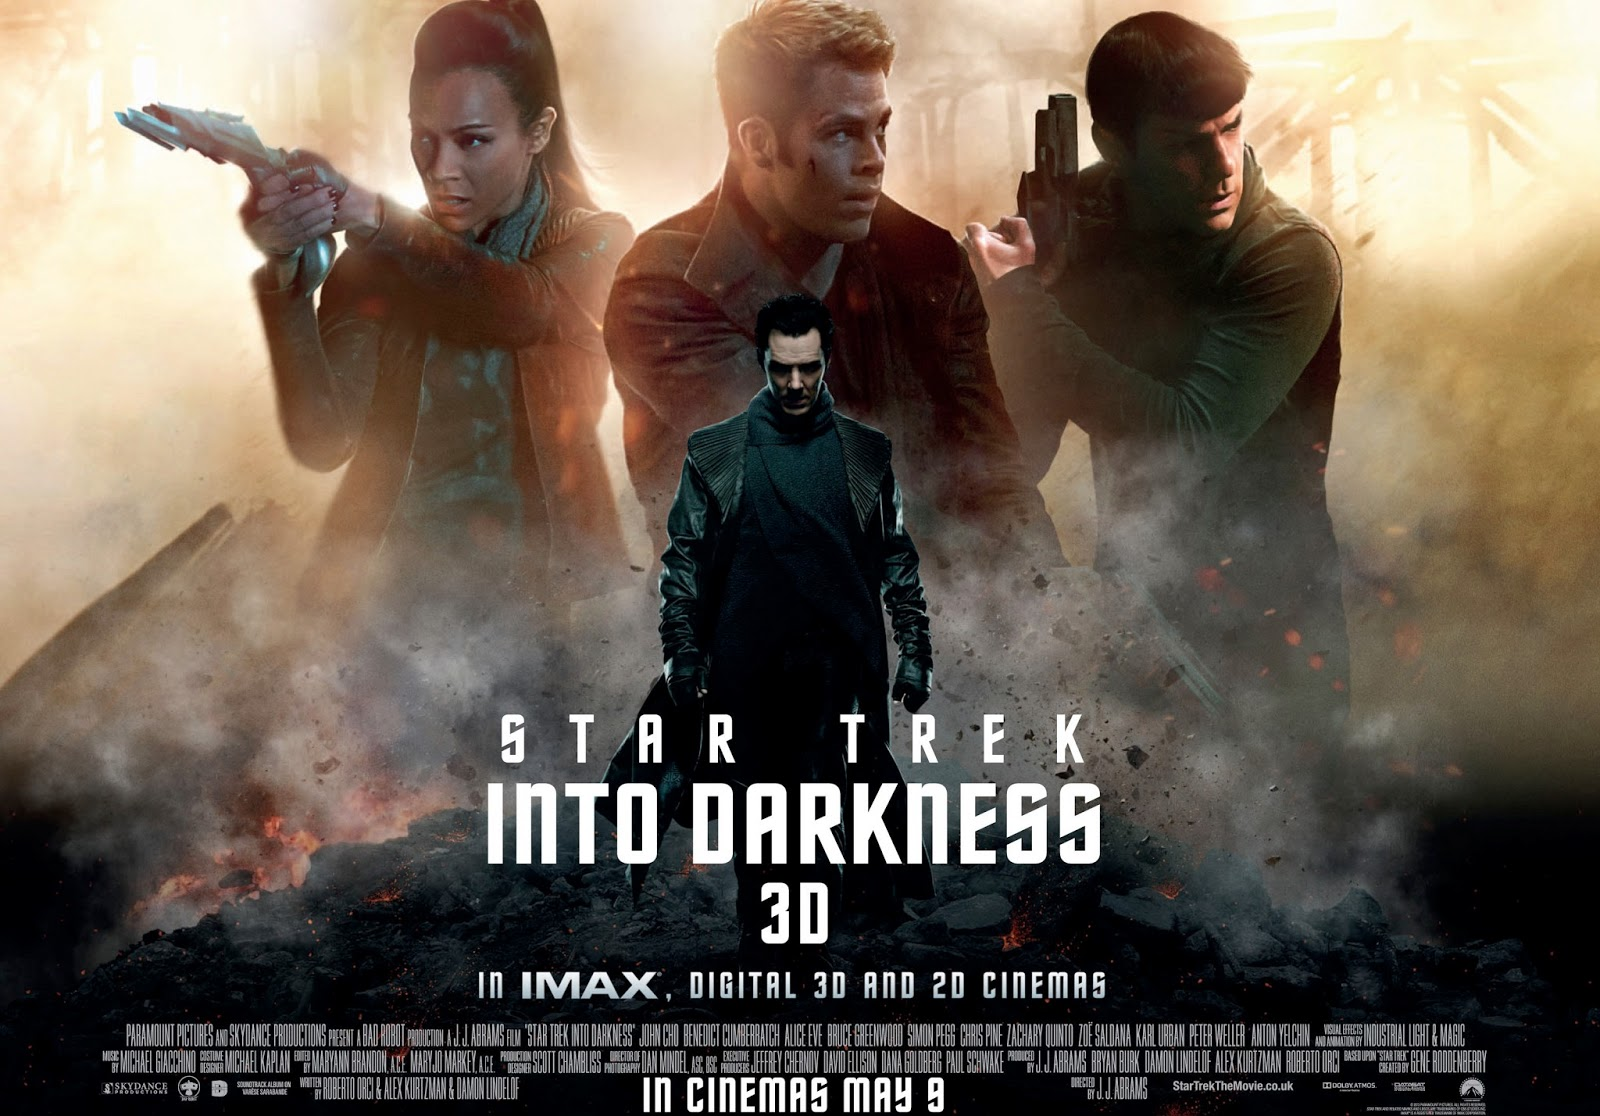 Star Trek Into Darkness: Final Preview